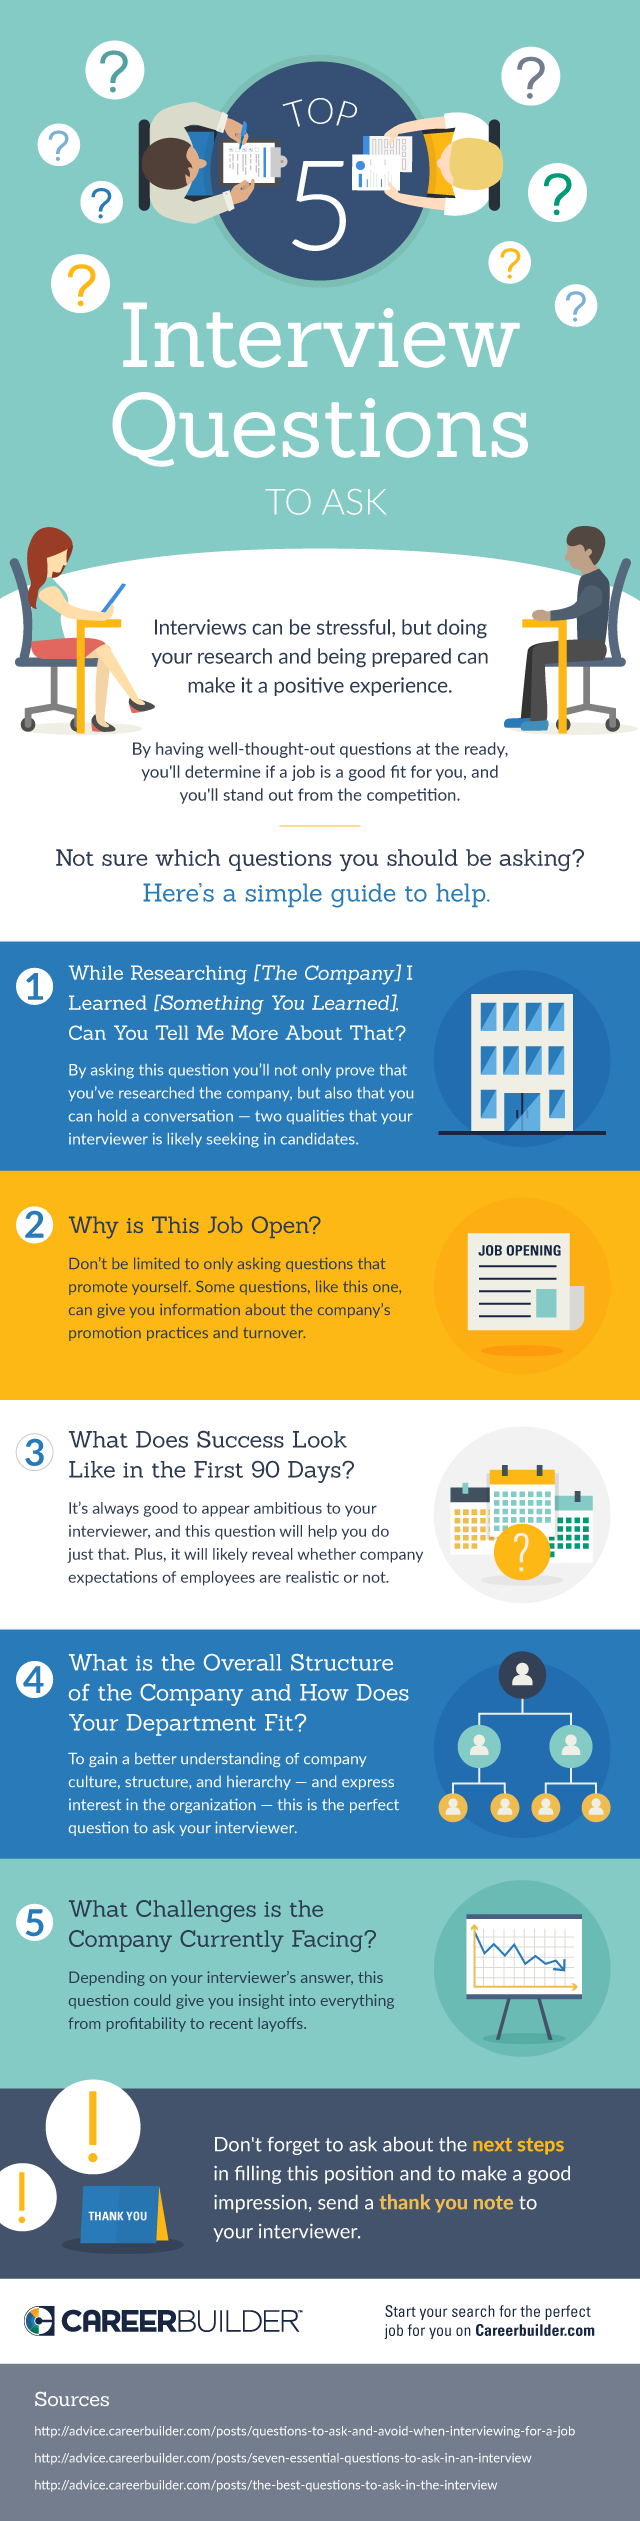 Top 5 ​Interview Questions to Ask #infographic